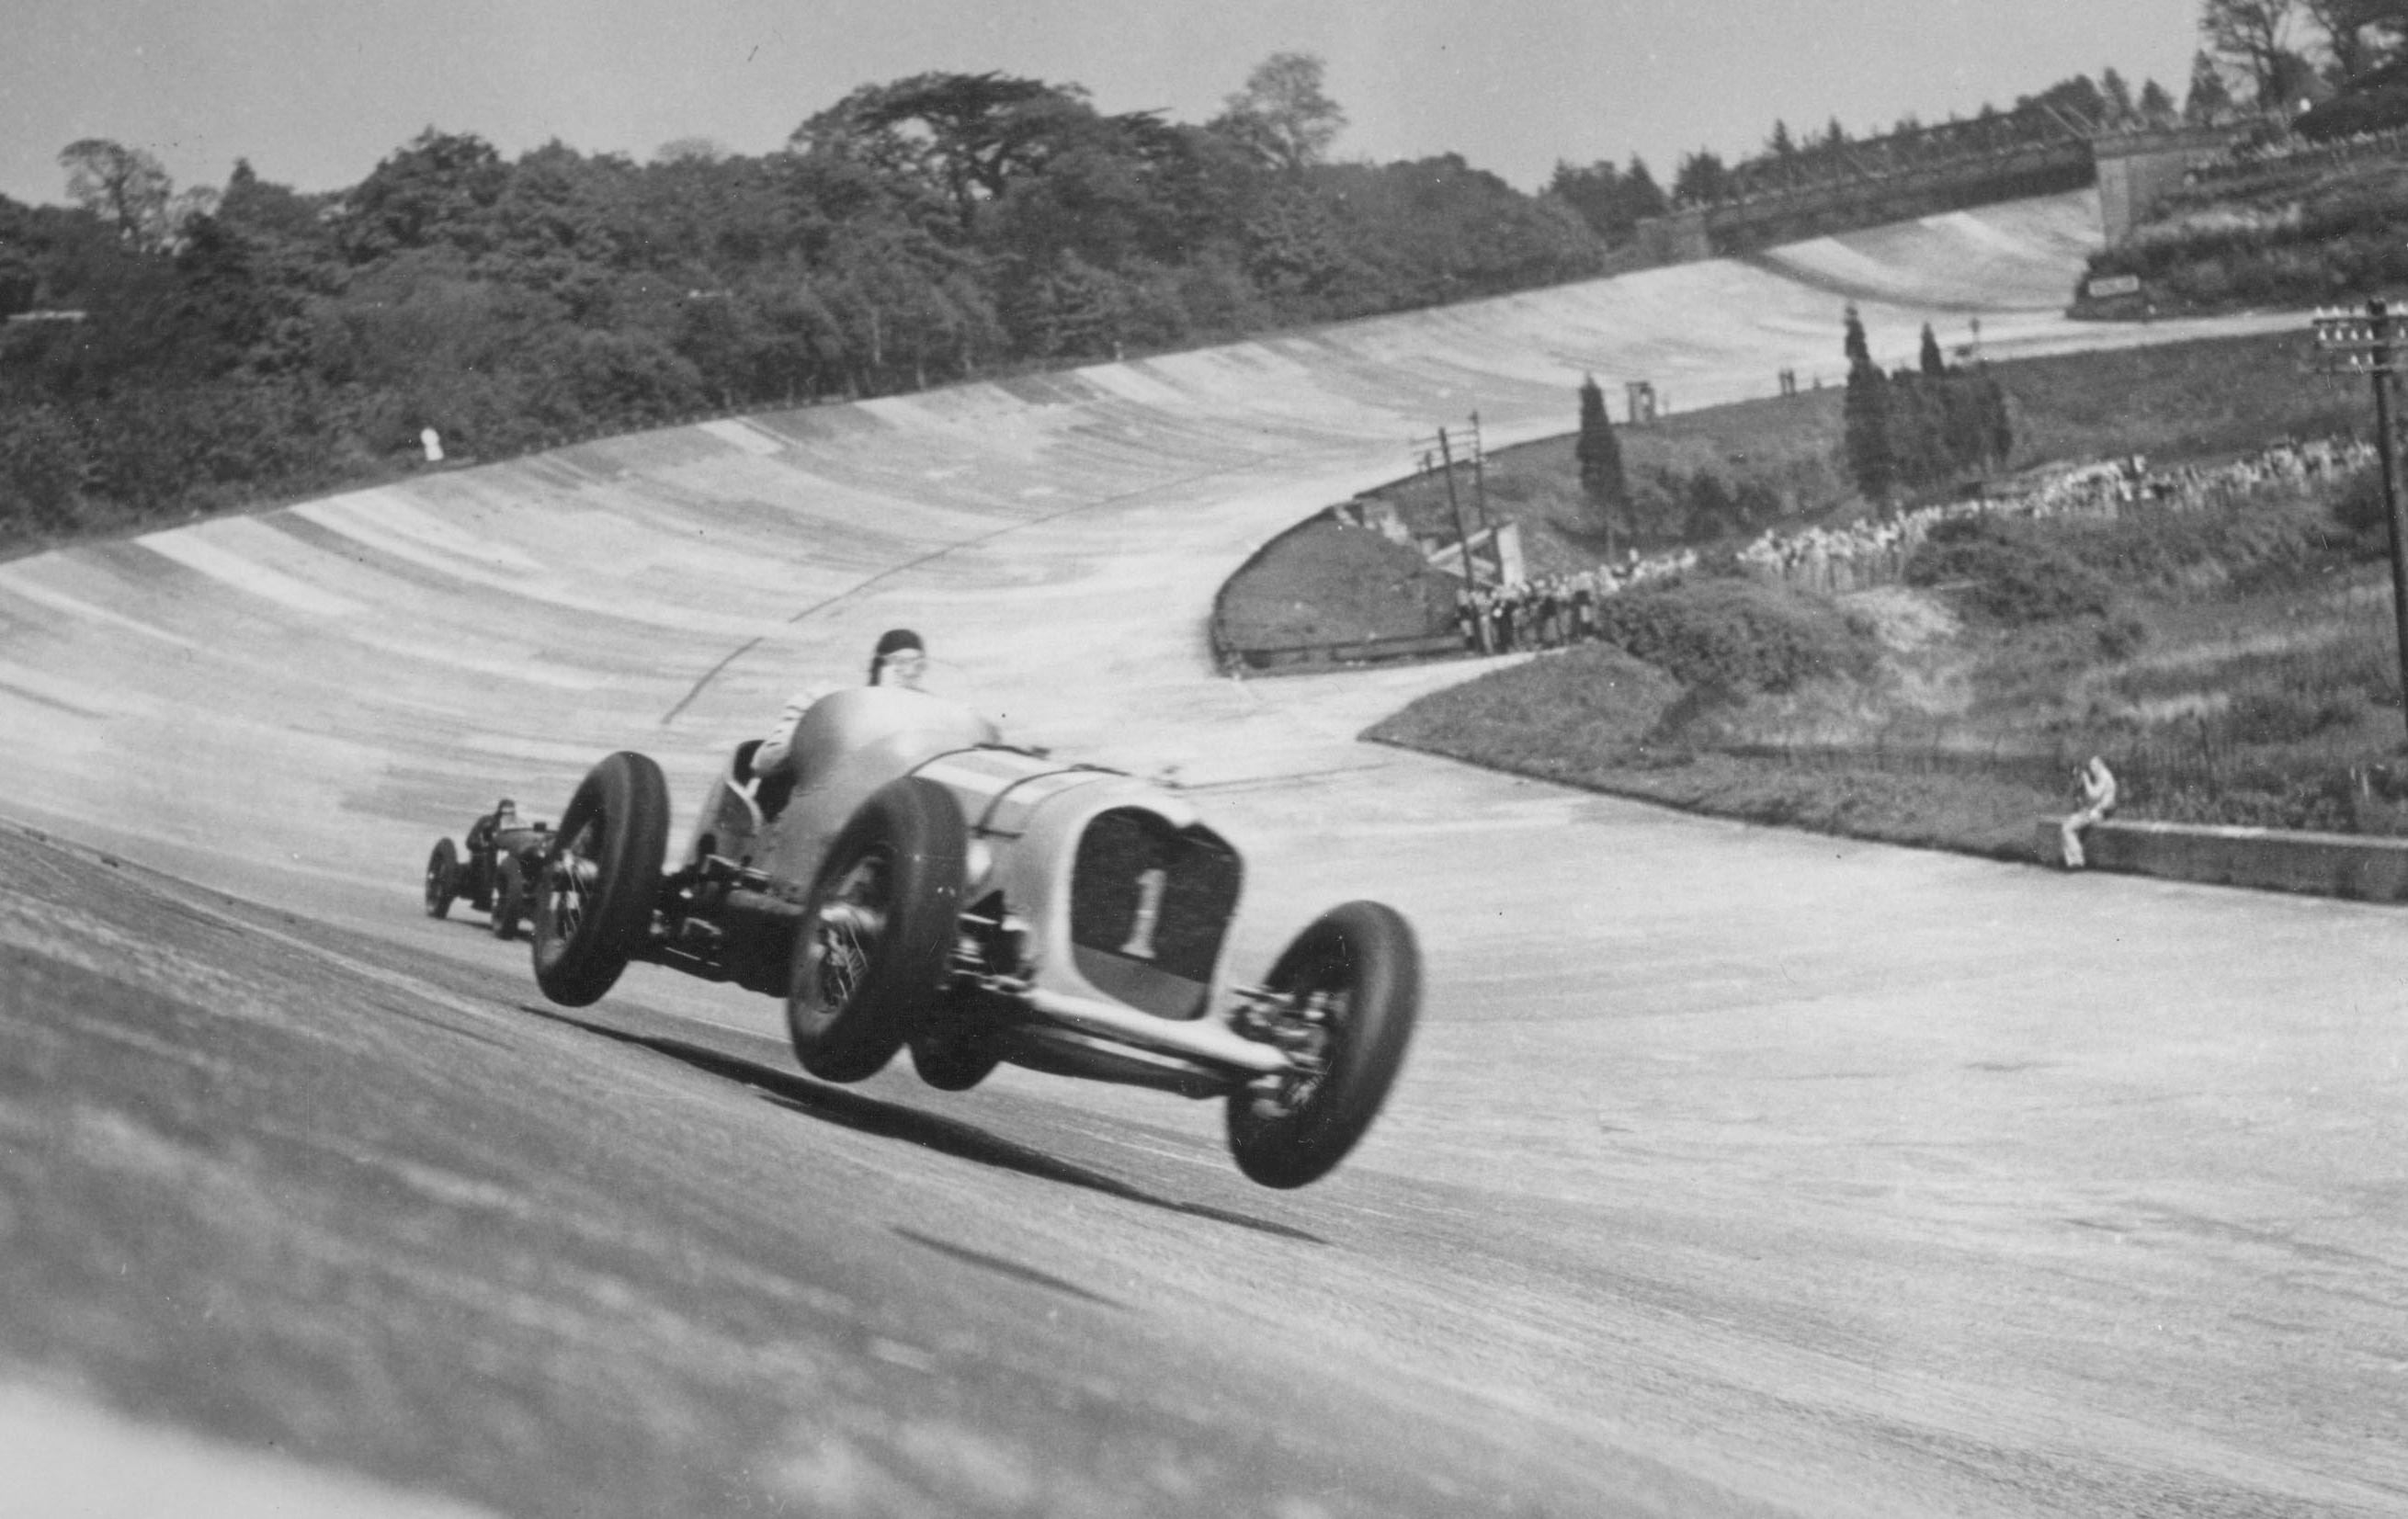 John Cobb drives the Napier_Railton on a record run at Brooklands